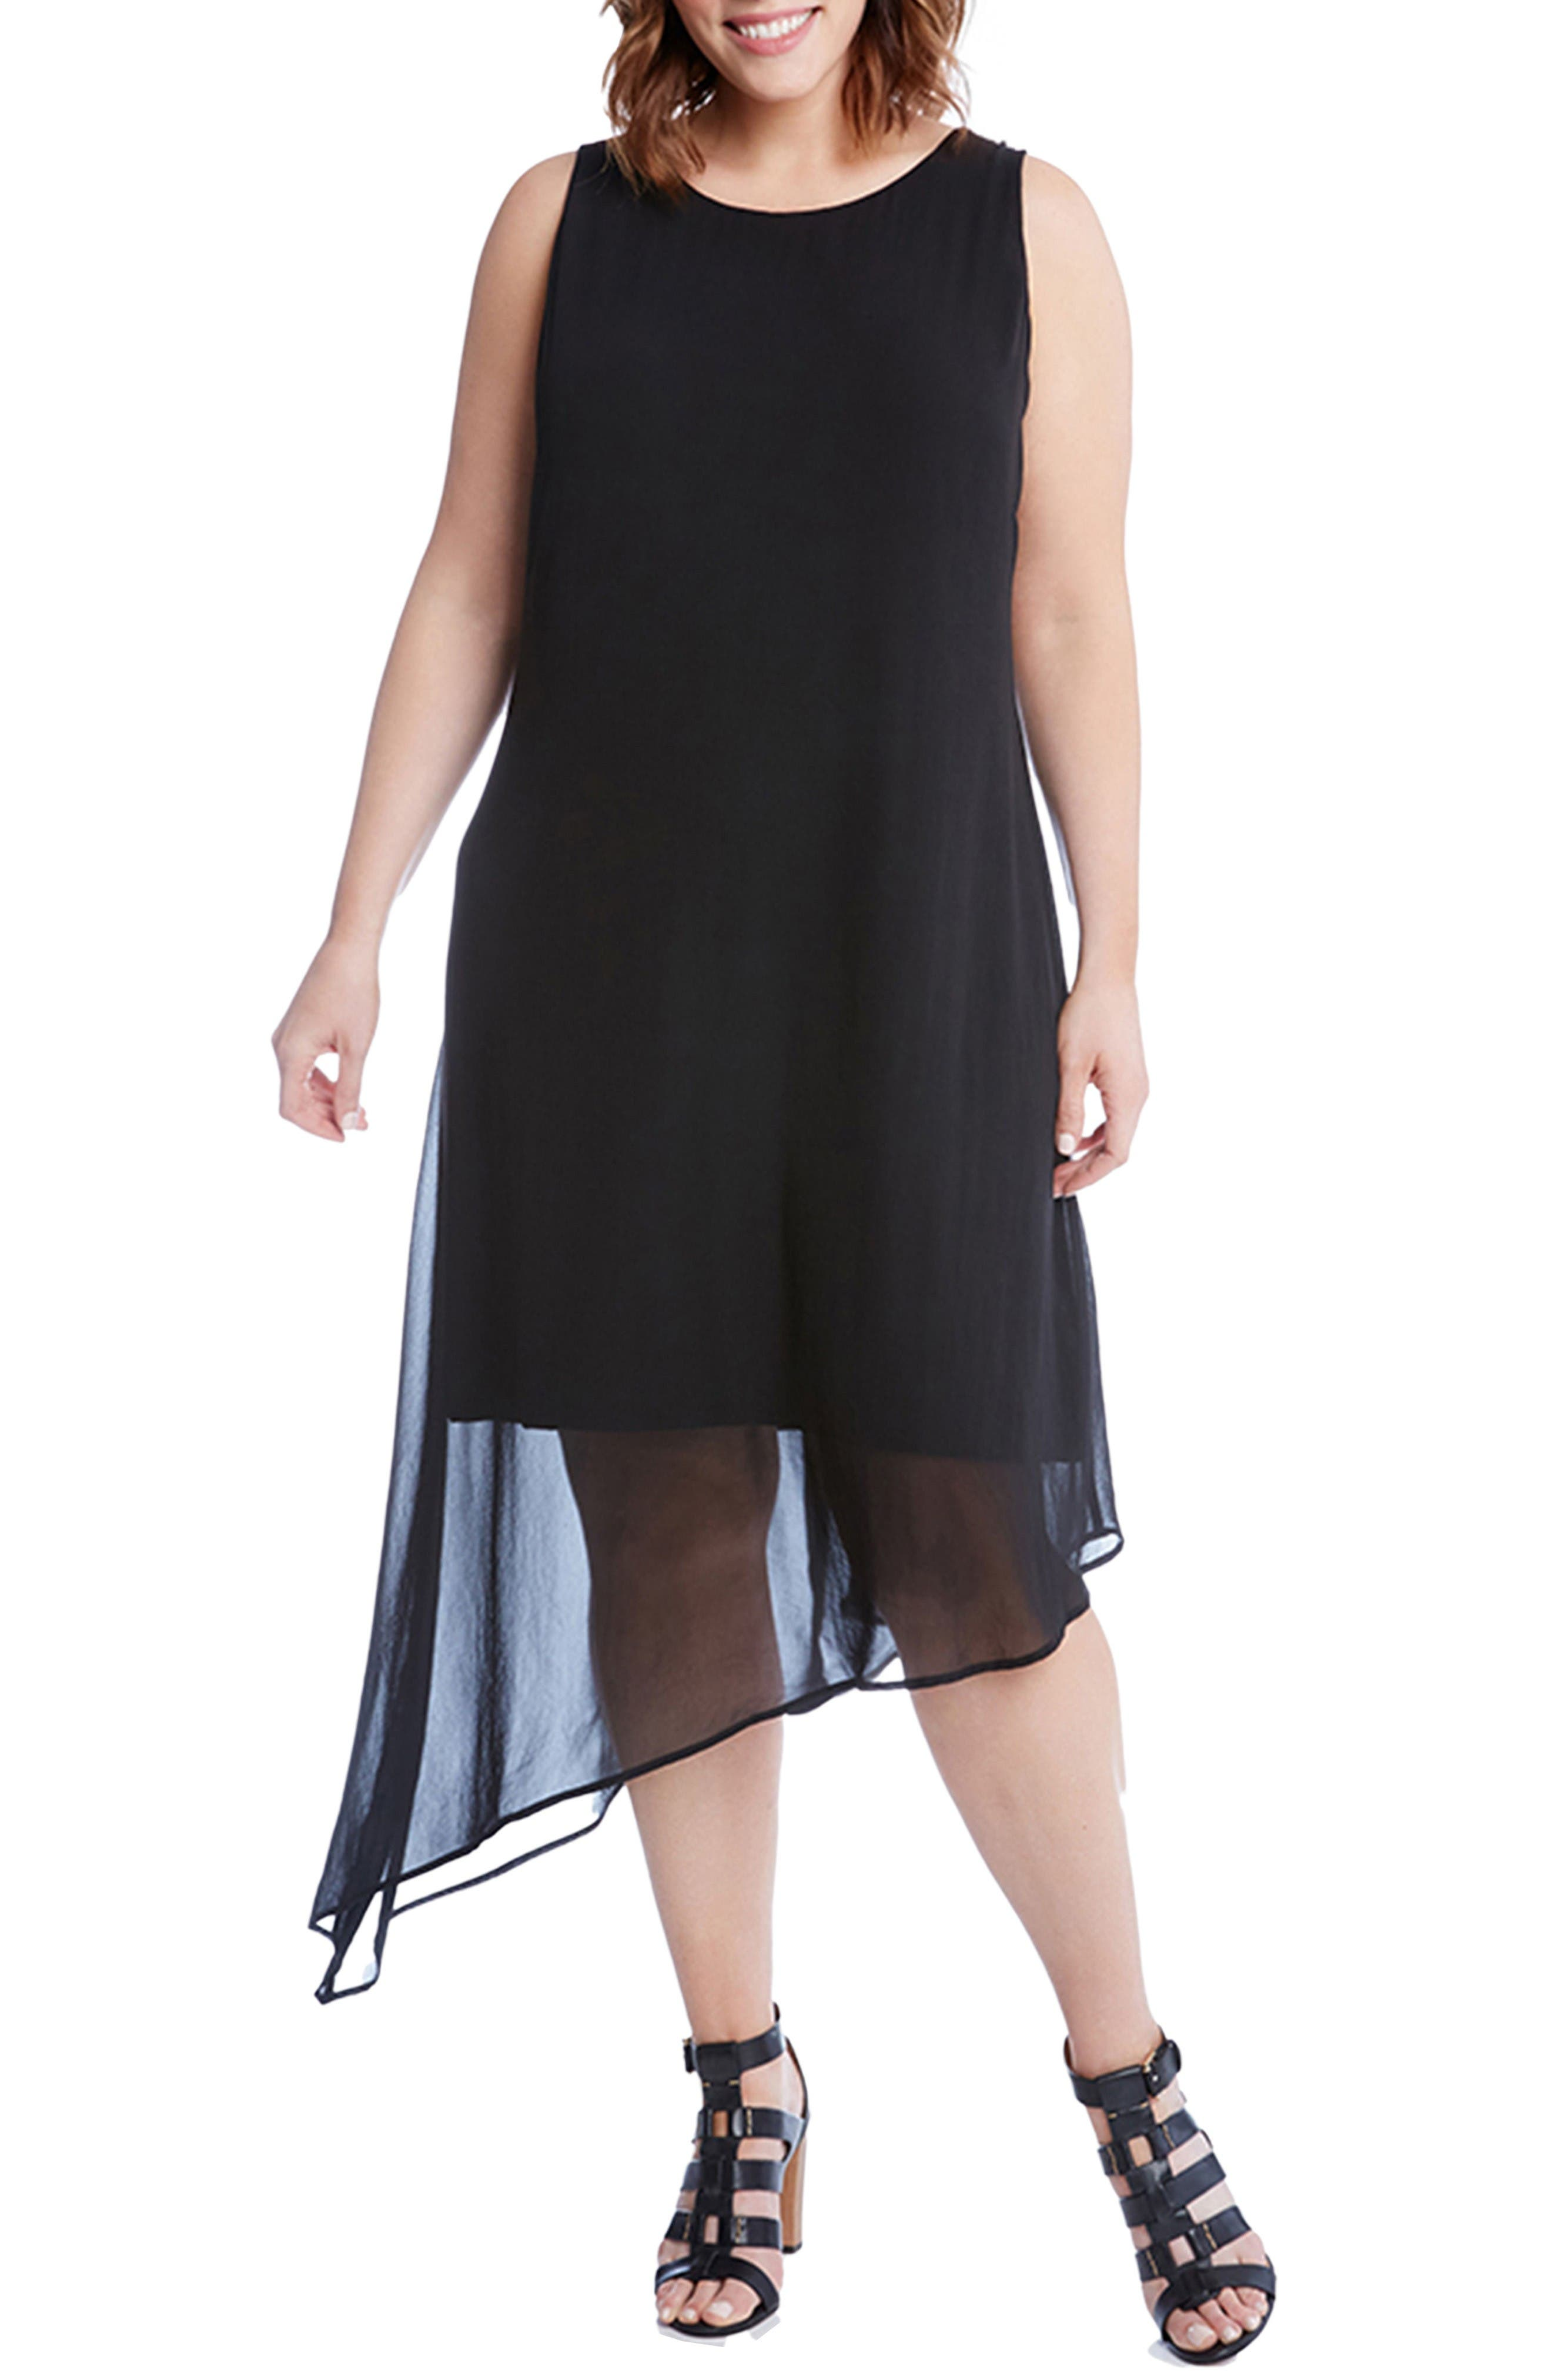 Alternate Image 1 Selected - Karen Kane Asymmetrical Overlay Shift Dress (Plus Size)